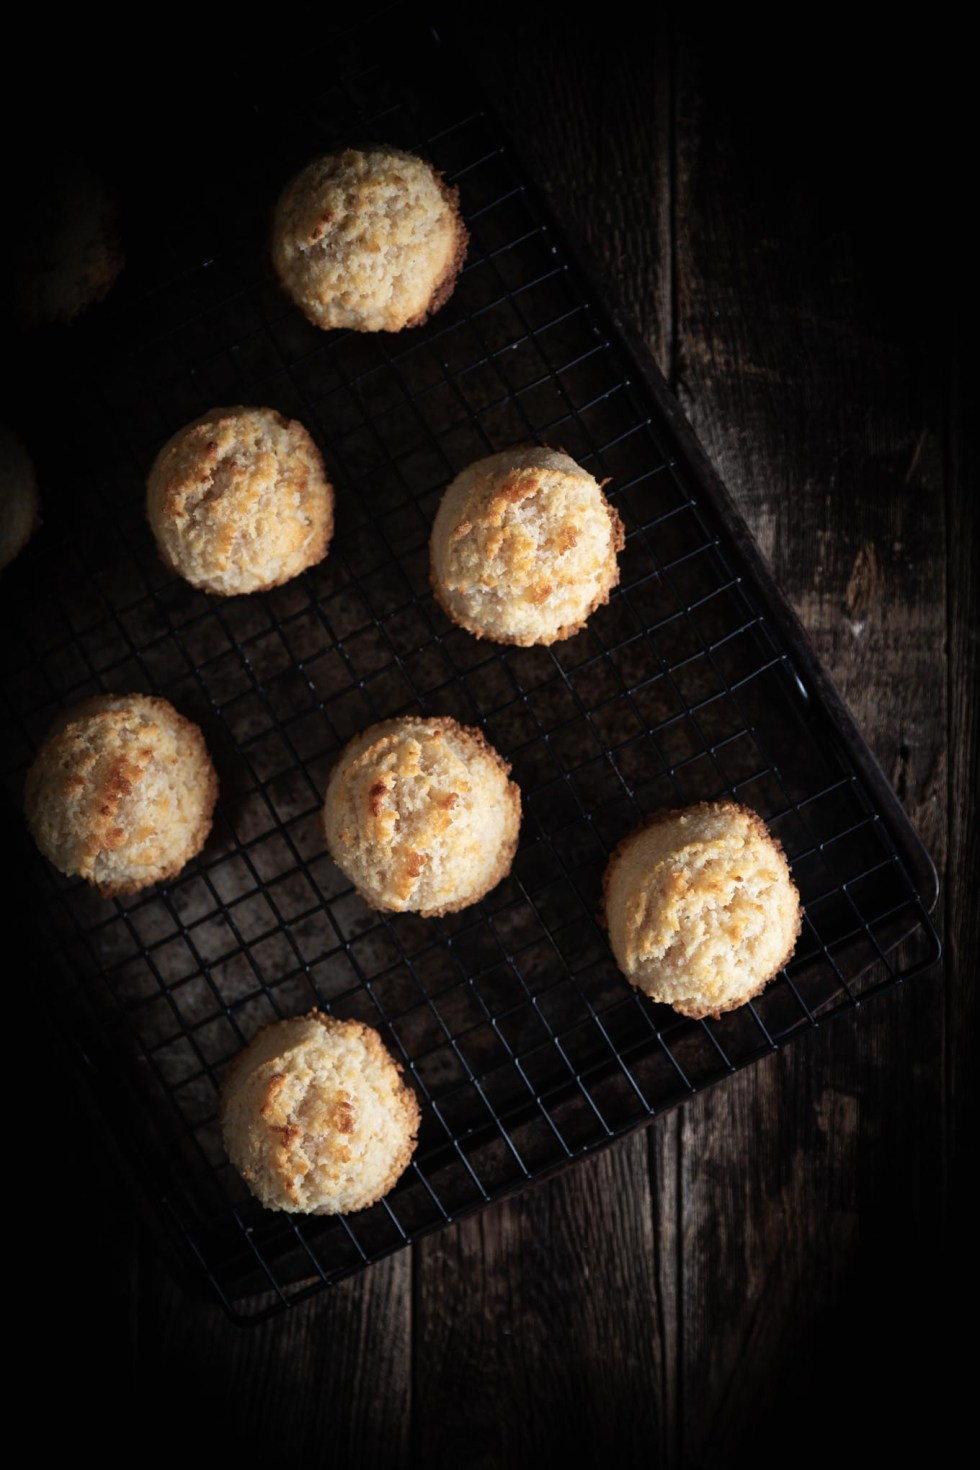 Overhead view of golden-brown coconut macaroons on a black cooling rack.